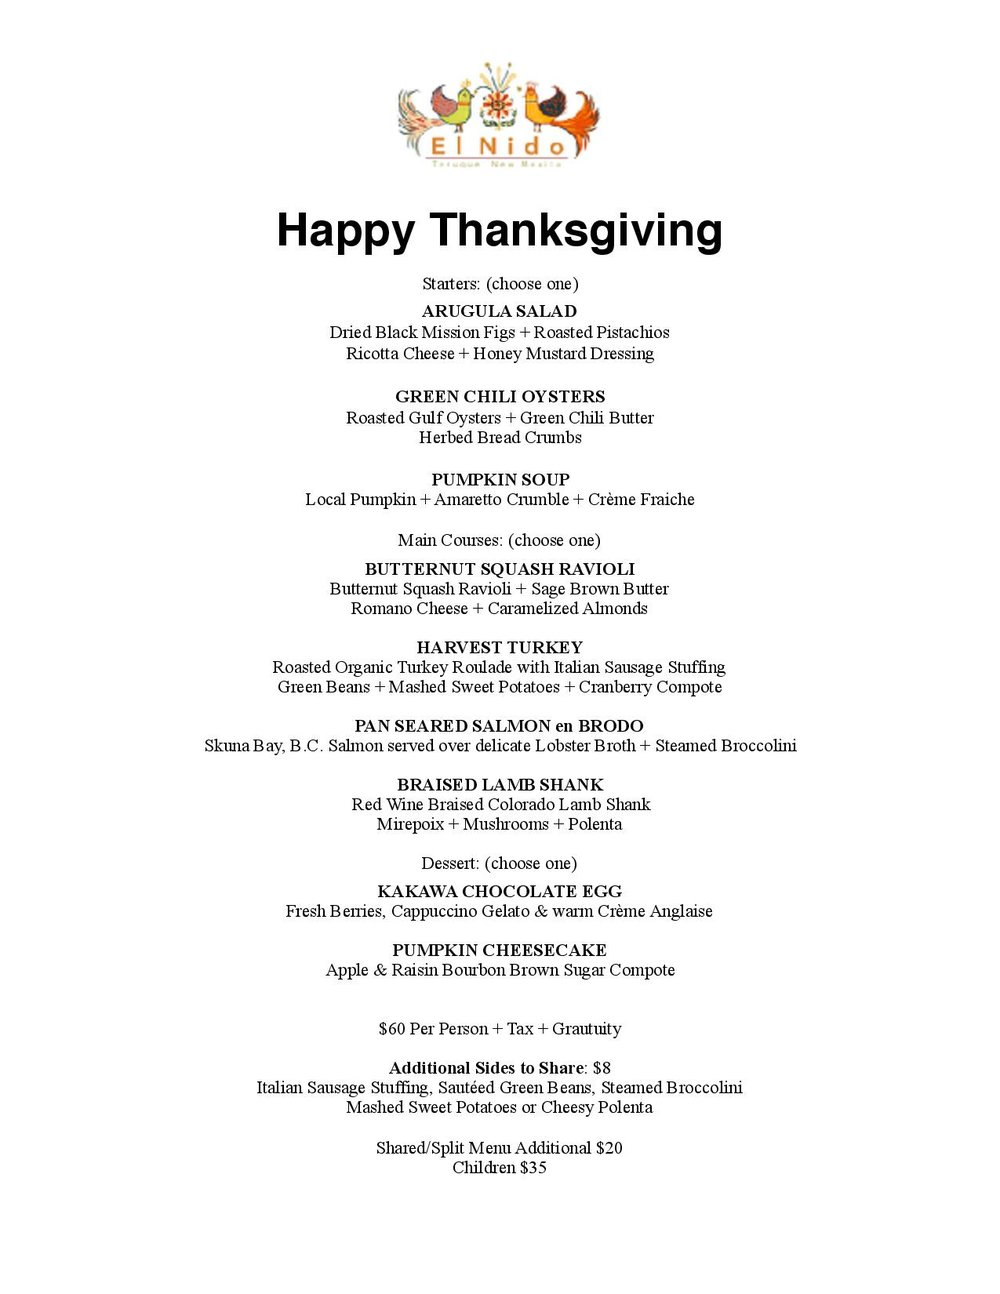 Thanksgiving 8.5x11 For Tables-page-001.jpg